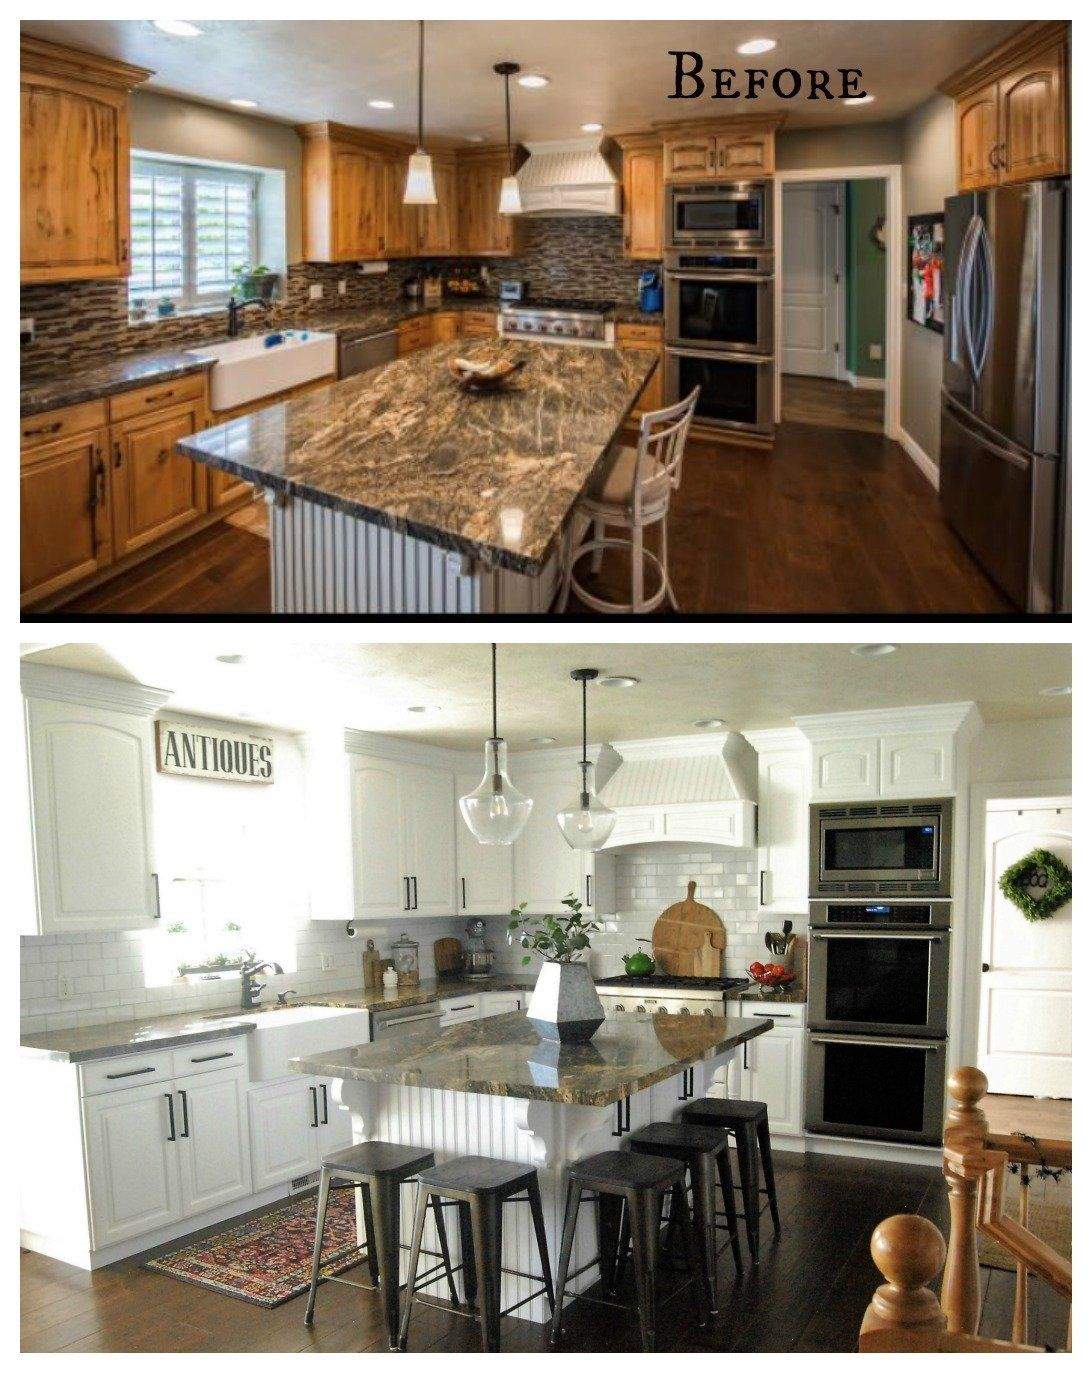 27 Inspiring Kitchen Makeovers Before and After